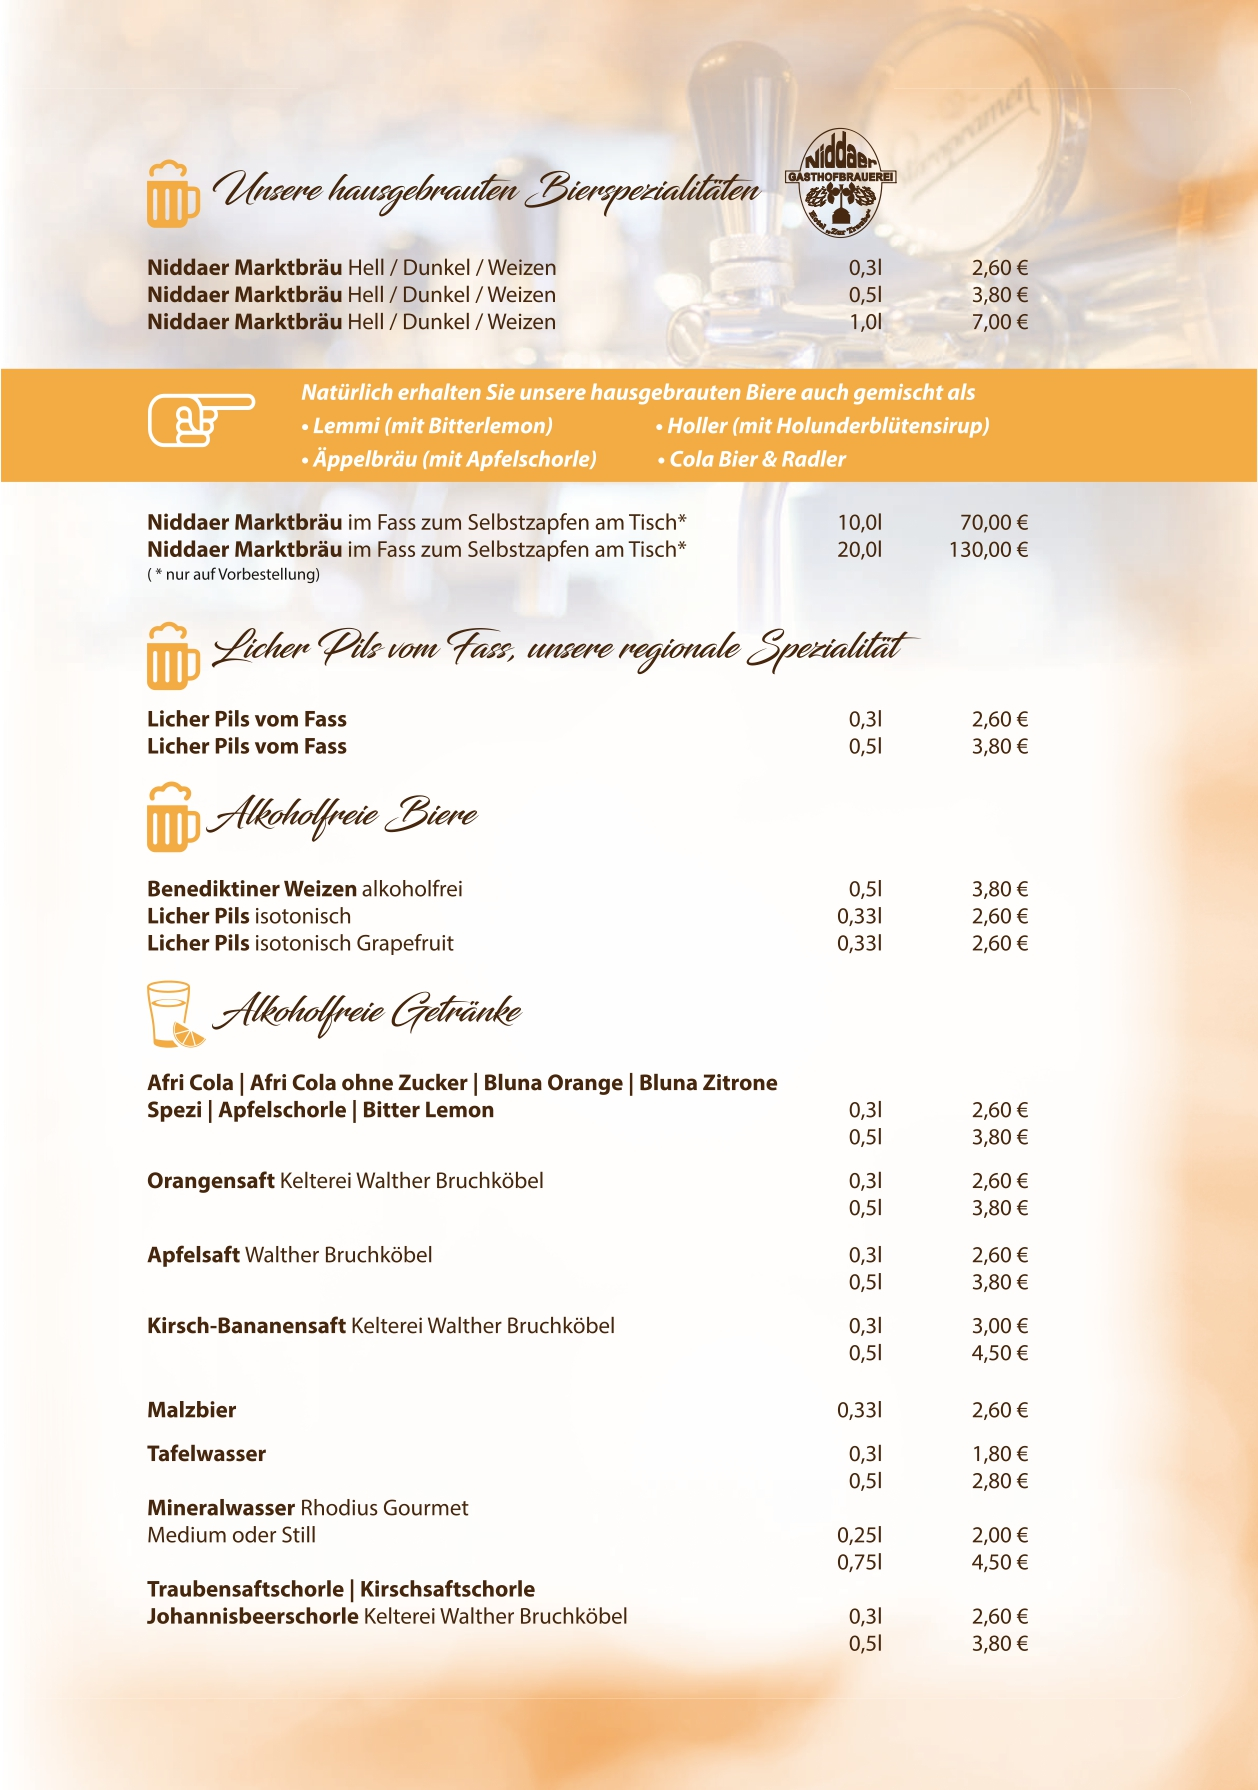 Speisekarte 2019 Version April Orange-komprimiert-bearbeitet_page-0003